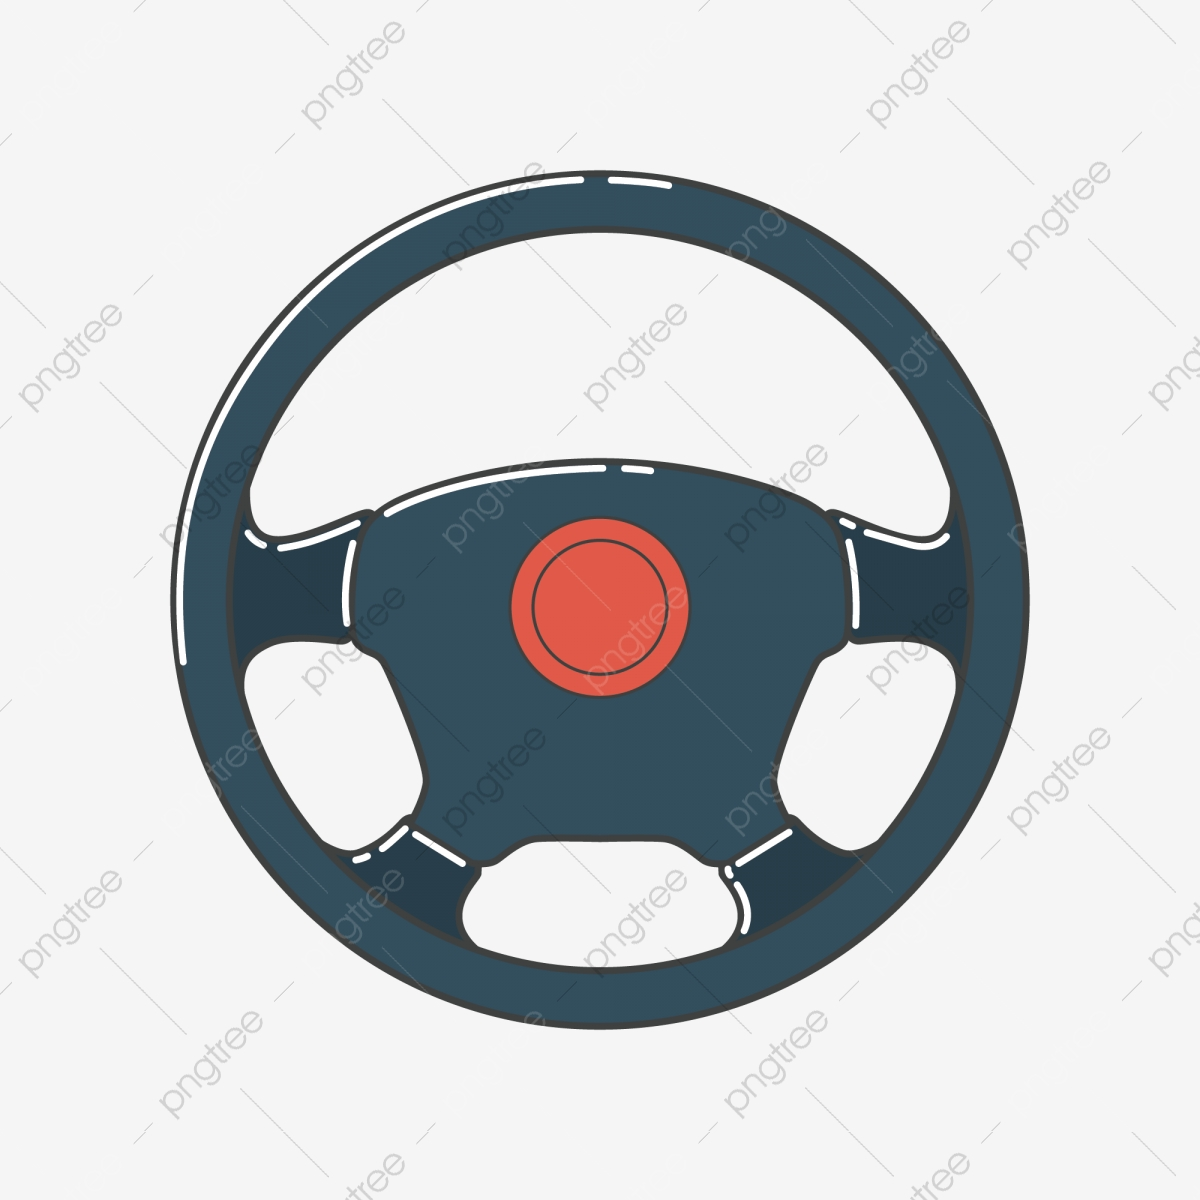 steering wheel png images vector and psd files free download on pngtree https pngtree com freepng steering wheel 4773537 html